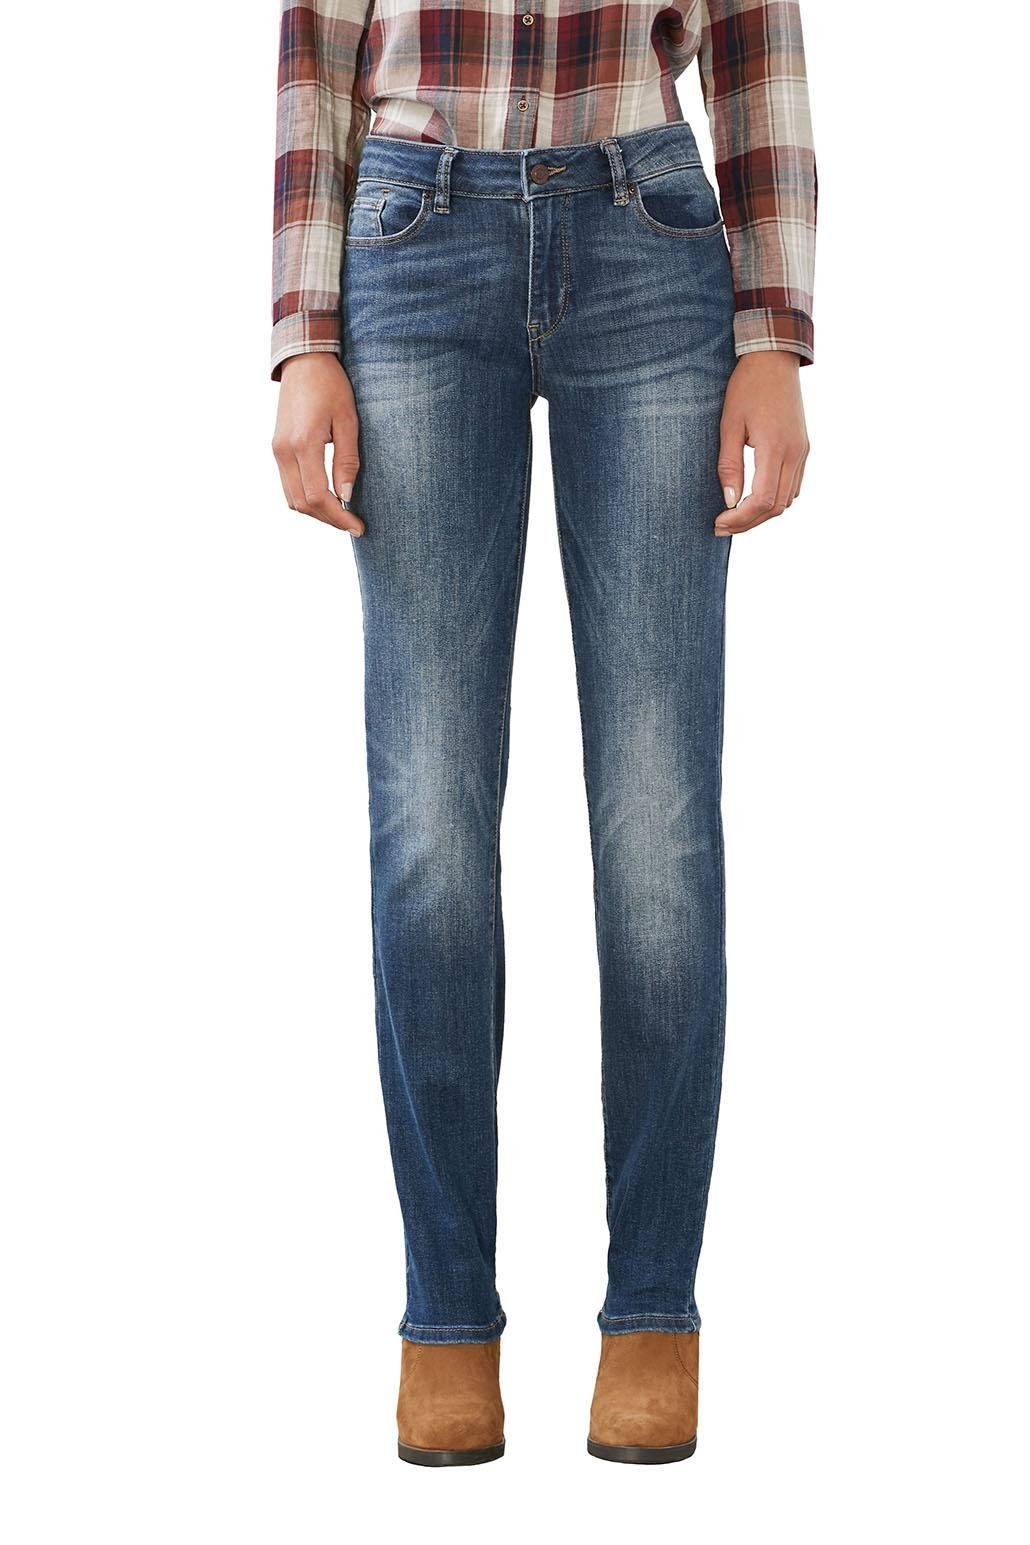 ESPRIT 994ee1b924, Jeans Mujer